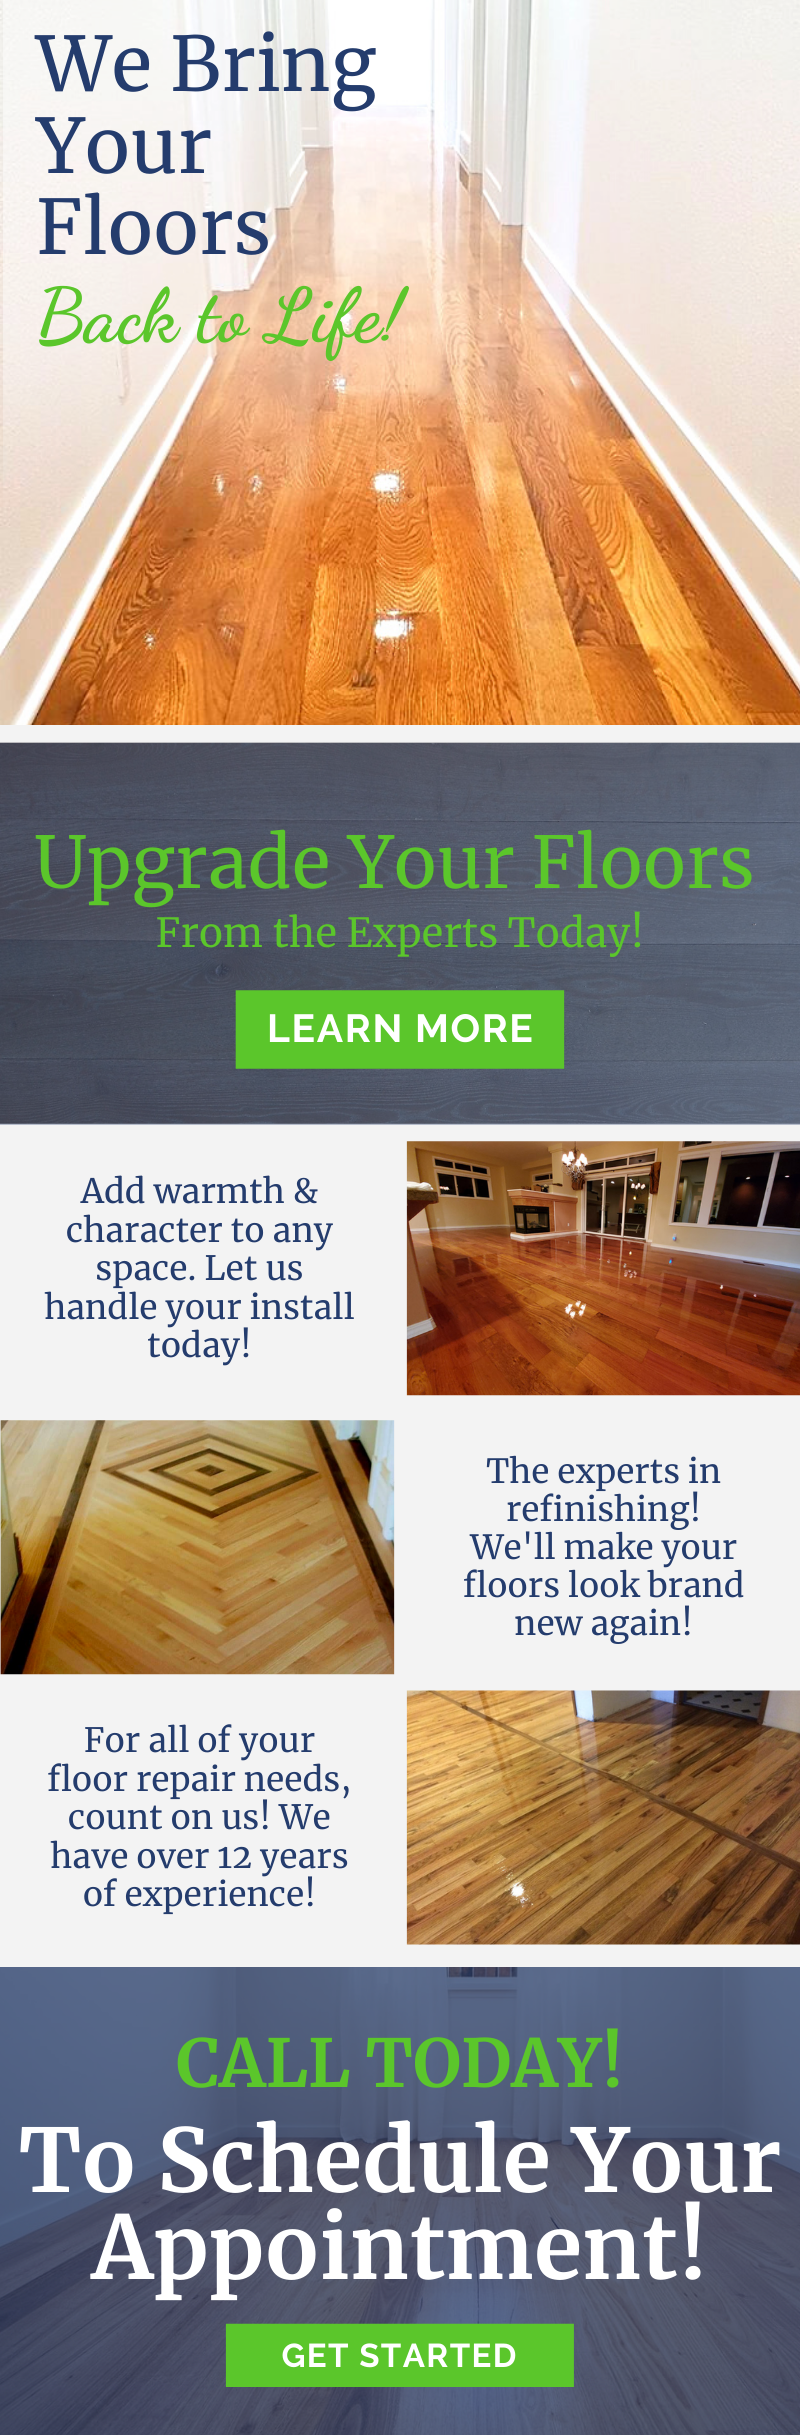 We Bring Your Floors Back To Life ✨ 1